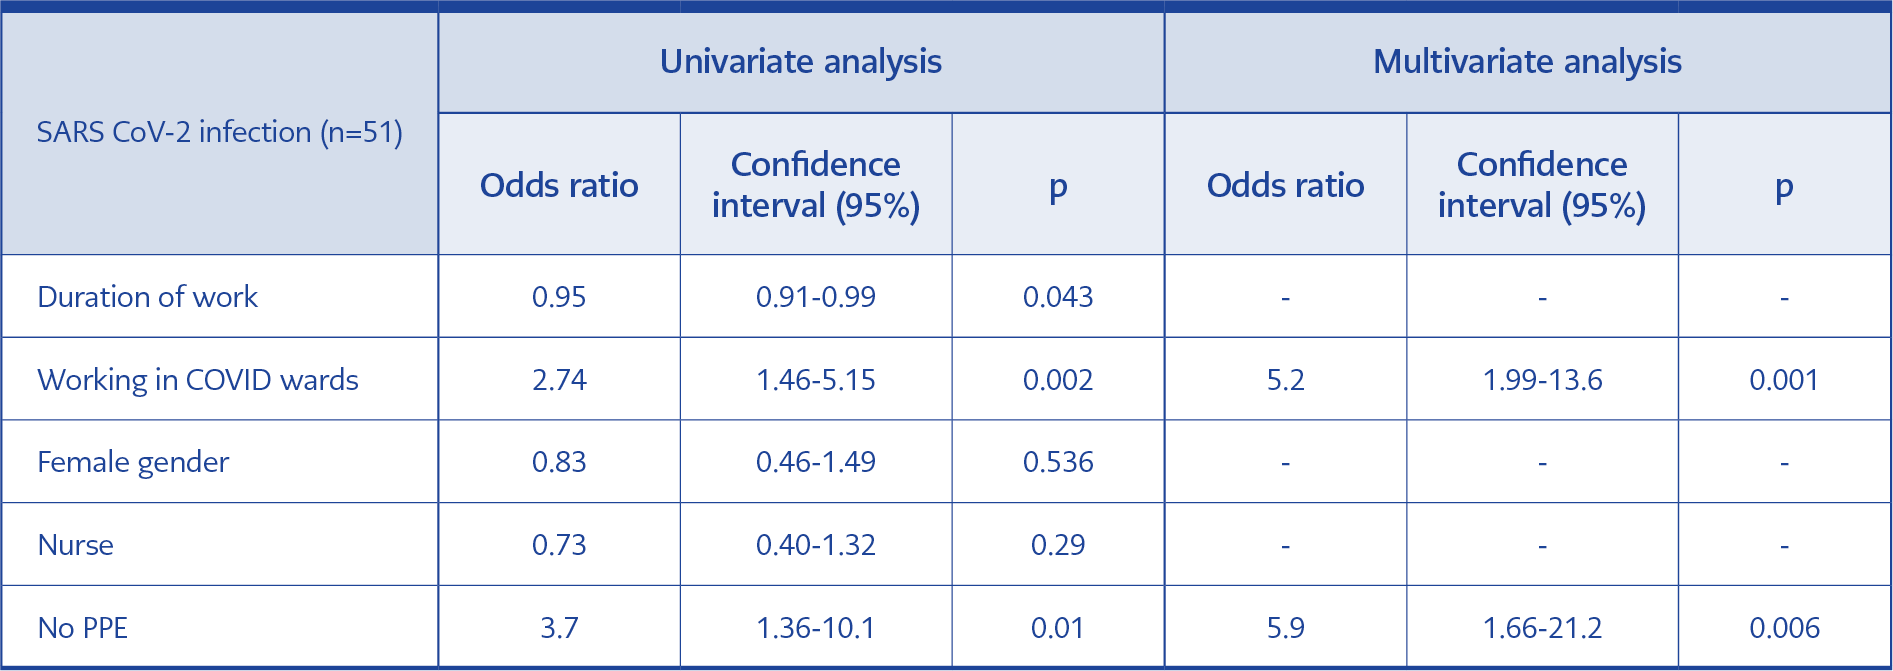 <strong>Table 2.</strong> Univariate and multivariate analyses for SARS CoV-2 infection (n=51)